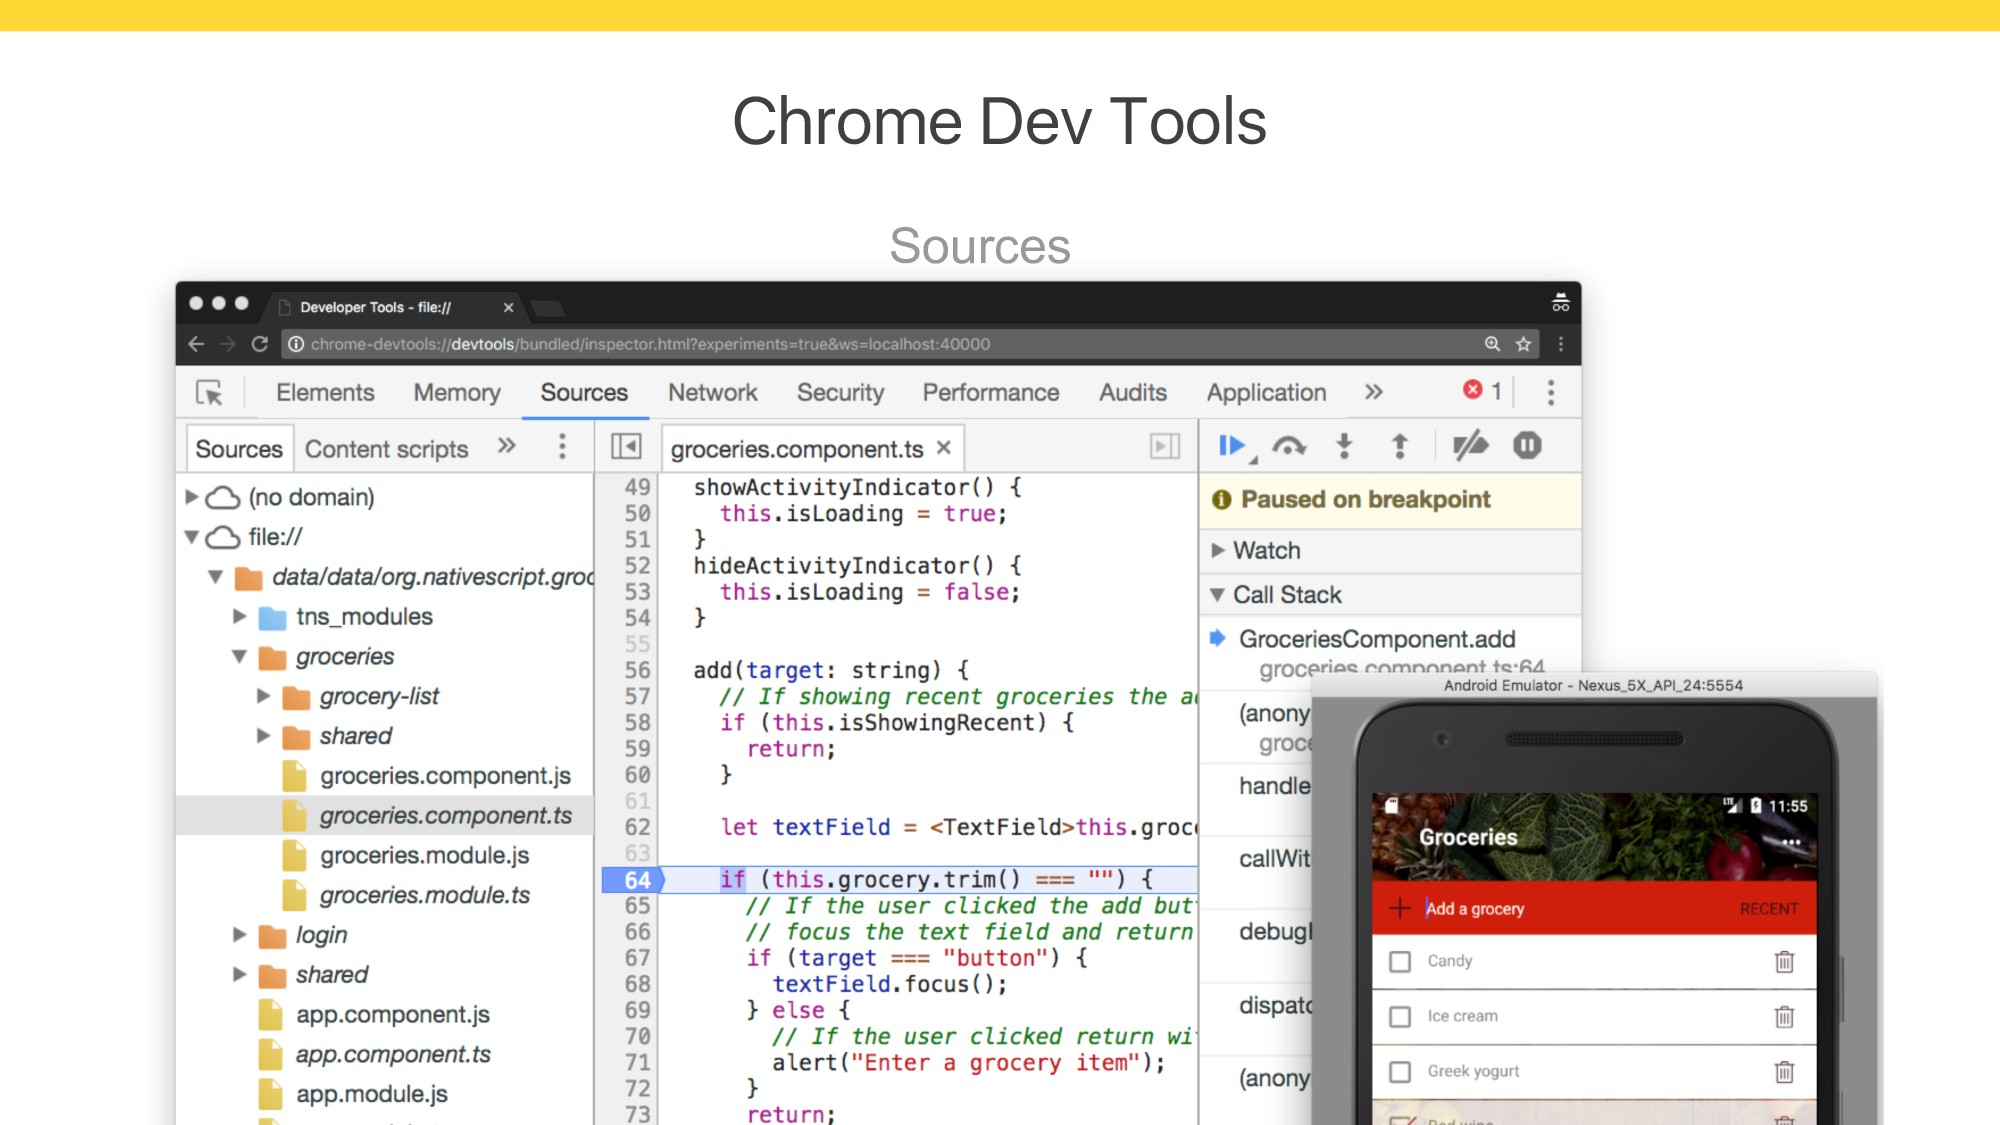 Chrome Dev Tools Sources